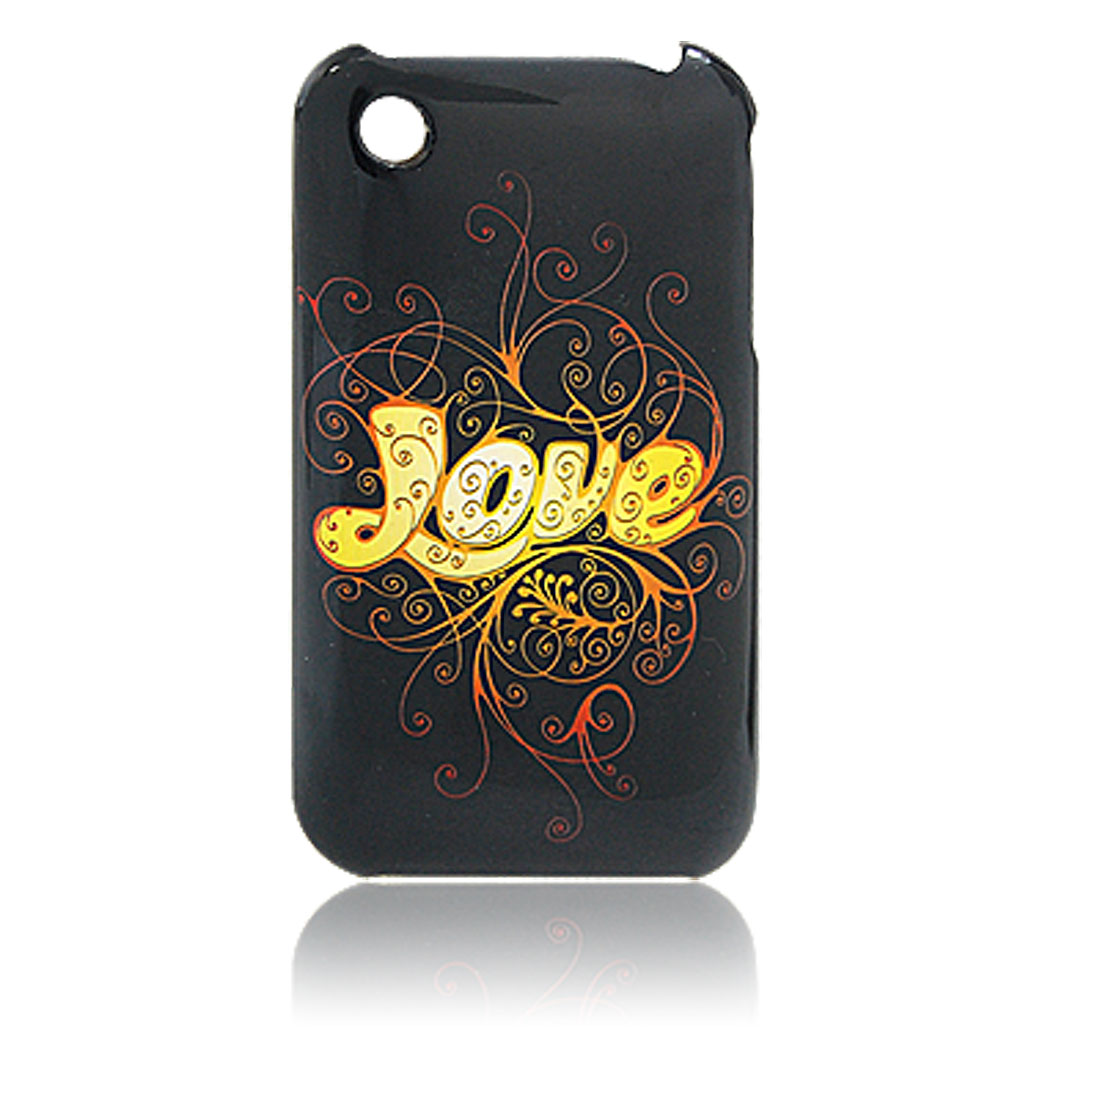 Love Character Print Hard Plastic Back Case Cover for iPhone 3G